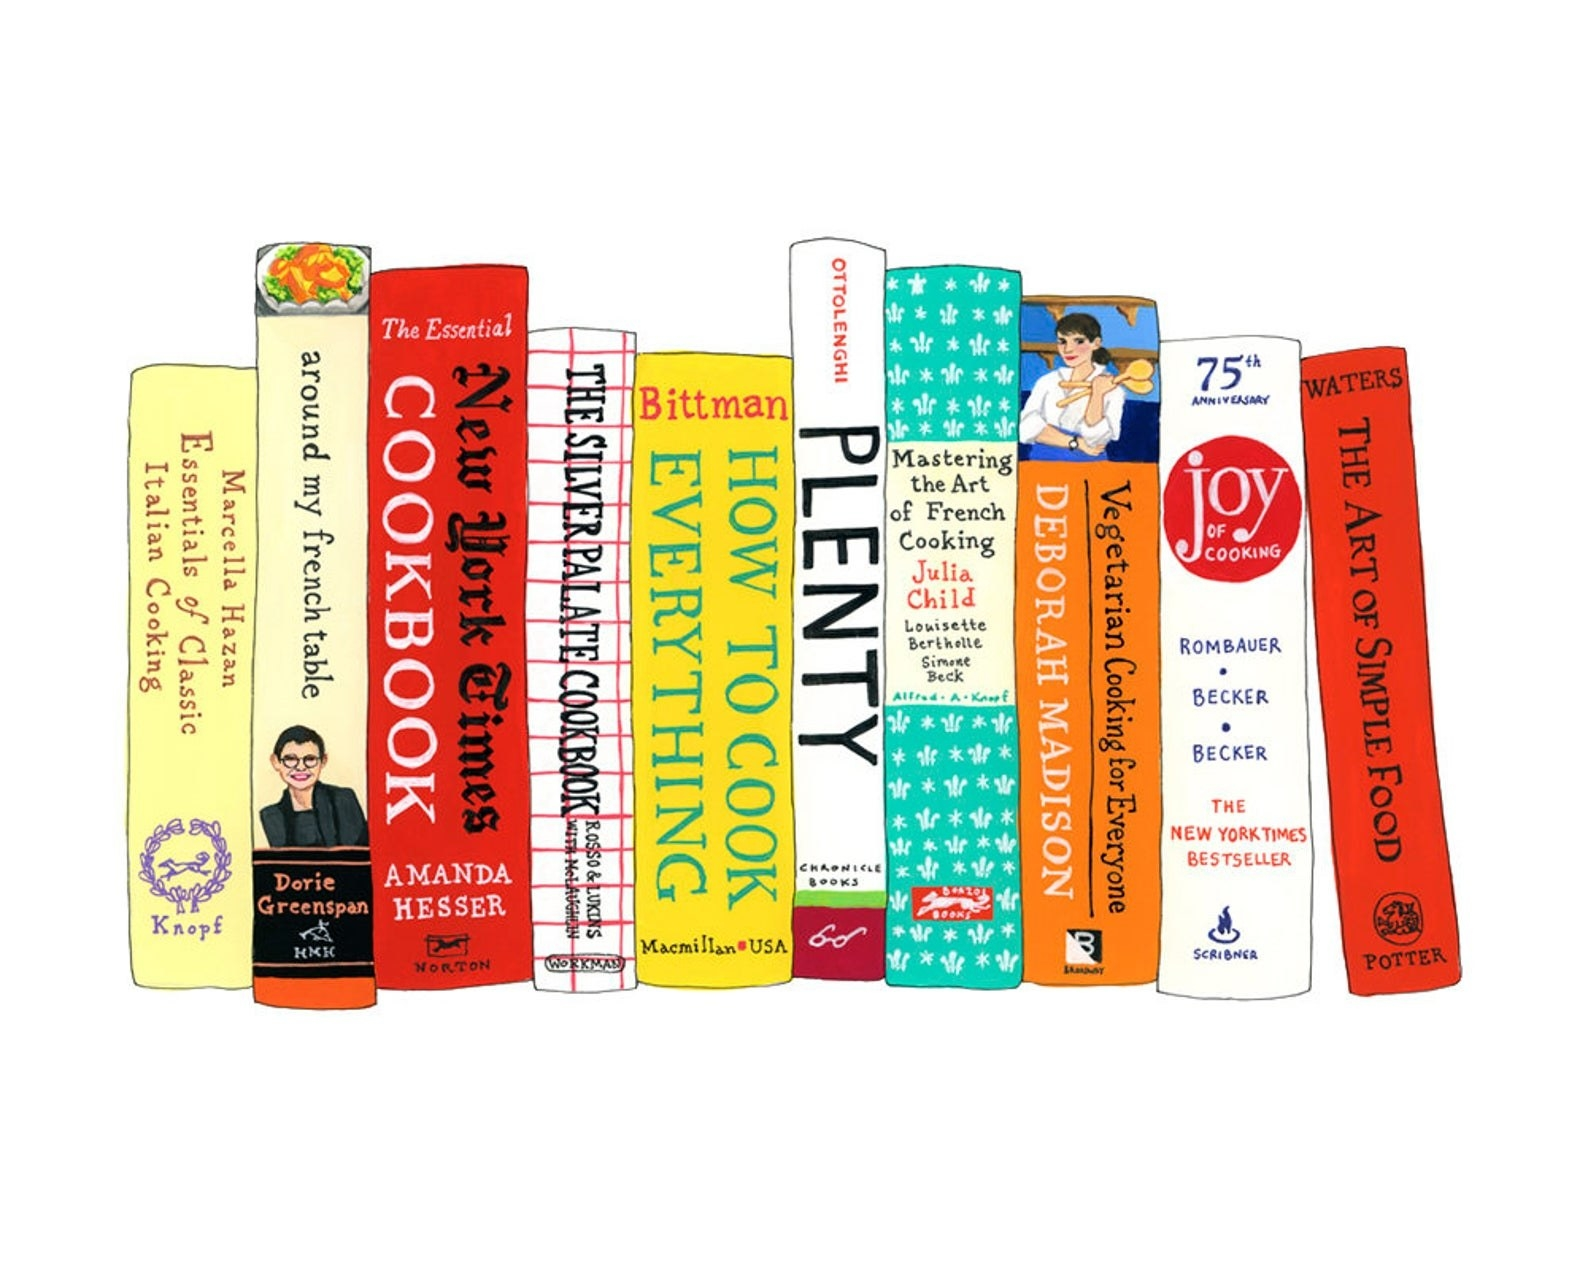 illustrated book spines including the art of simple food, how to cook everything, and mastering the art of french cooking